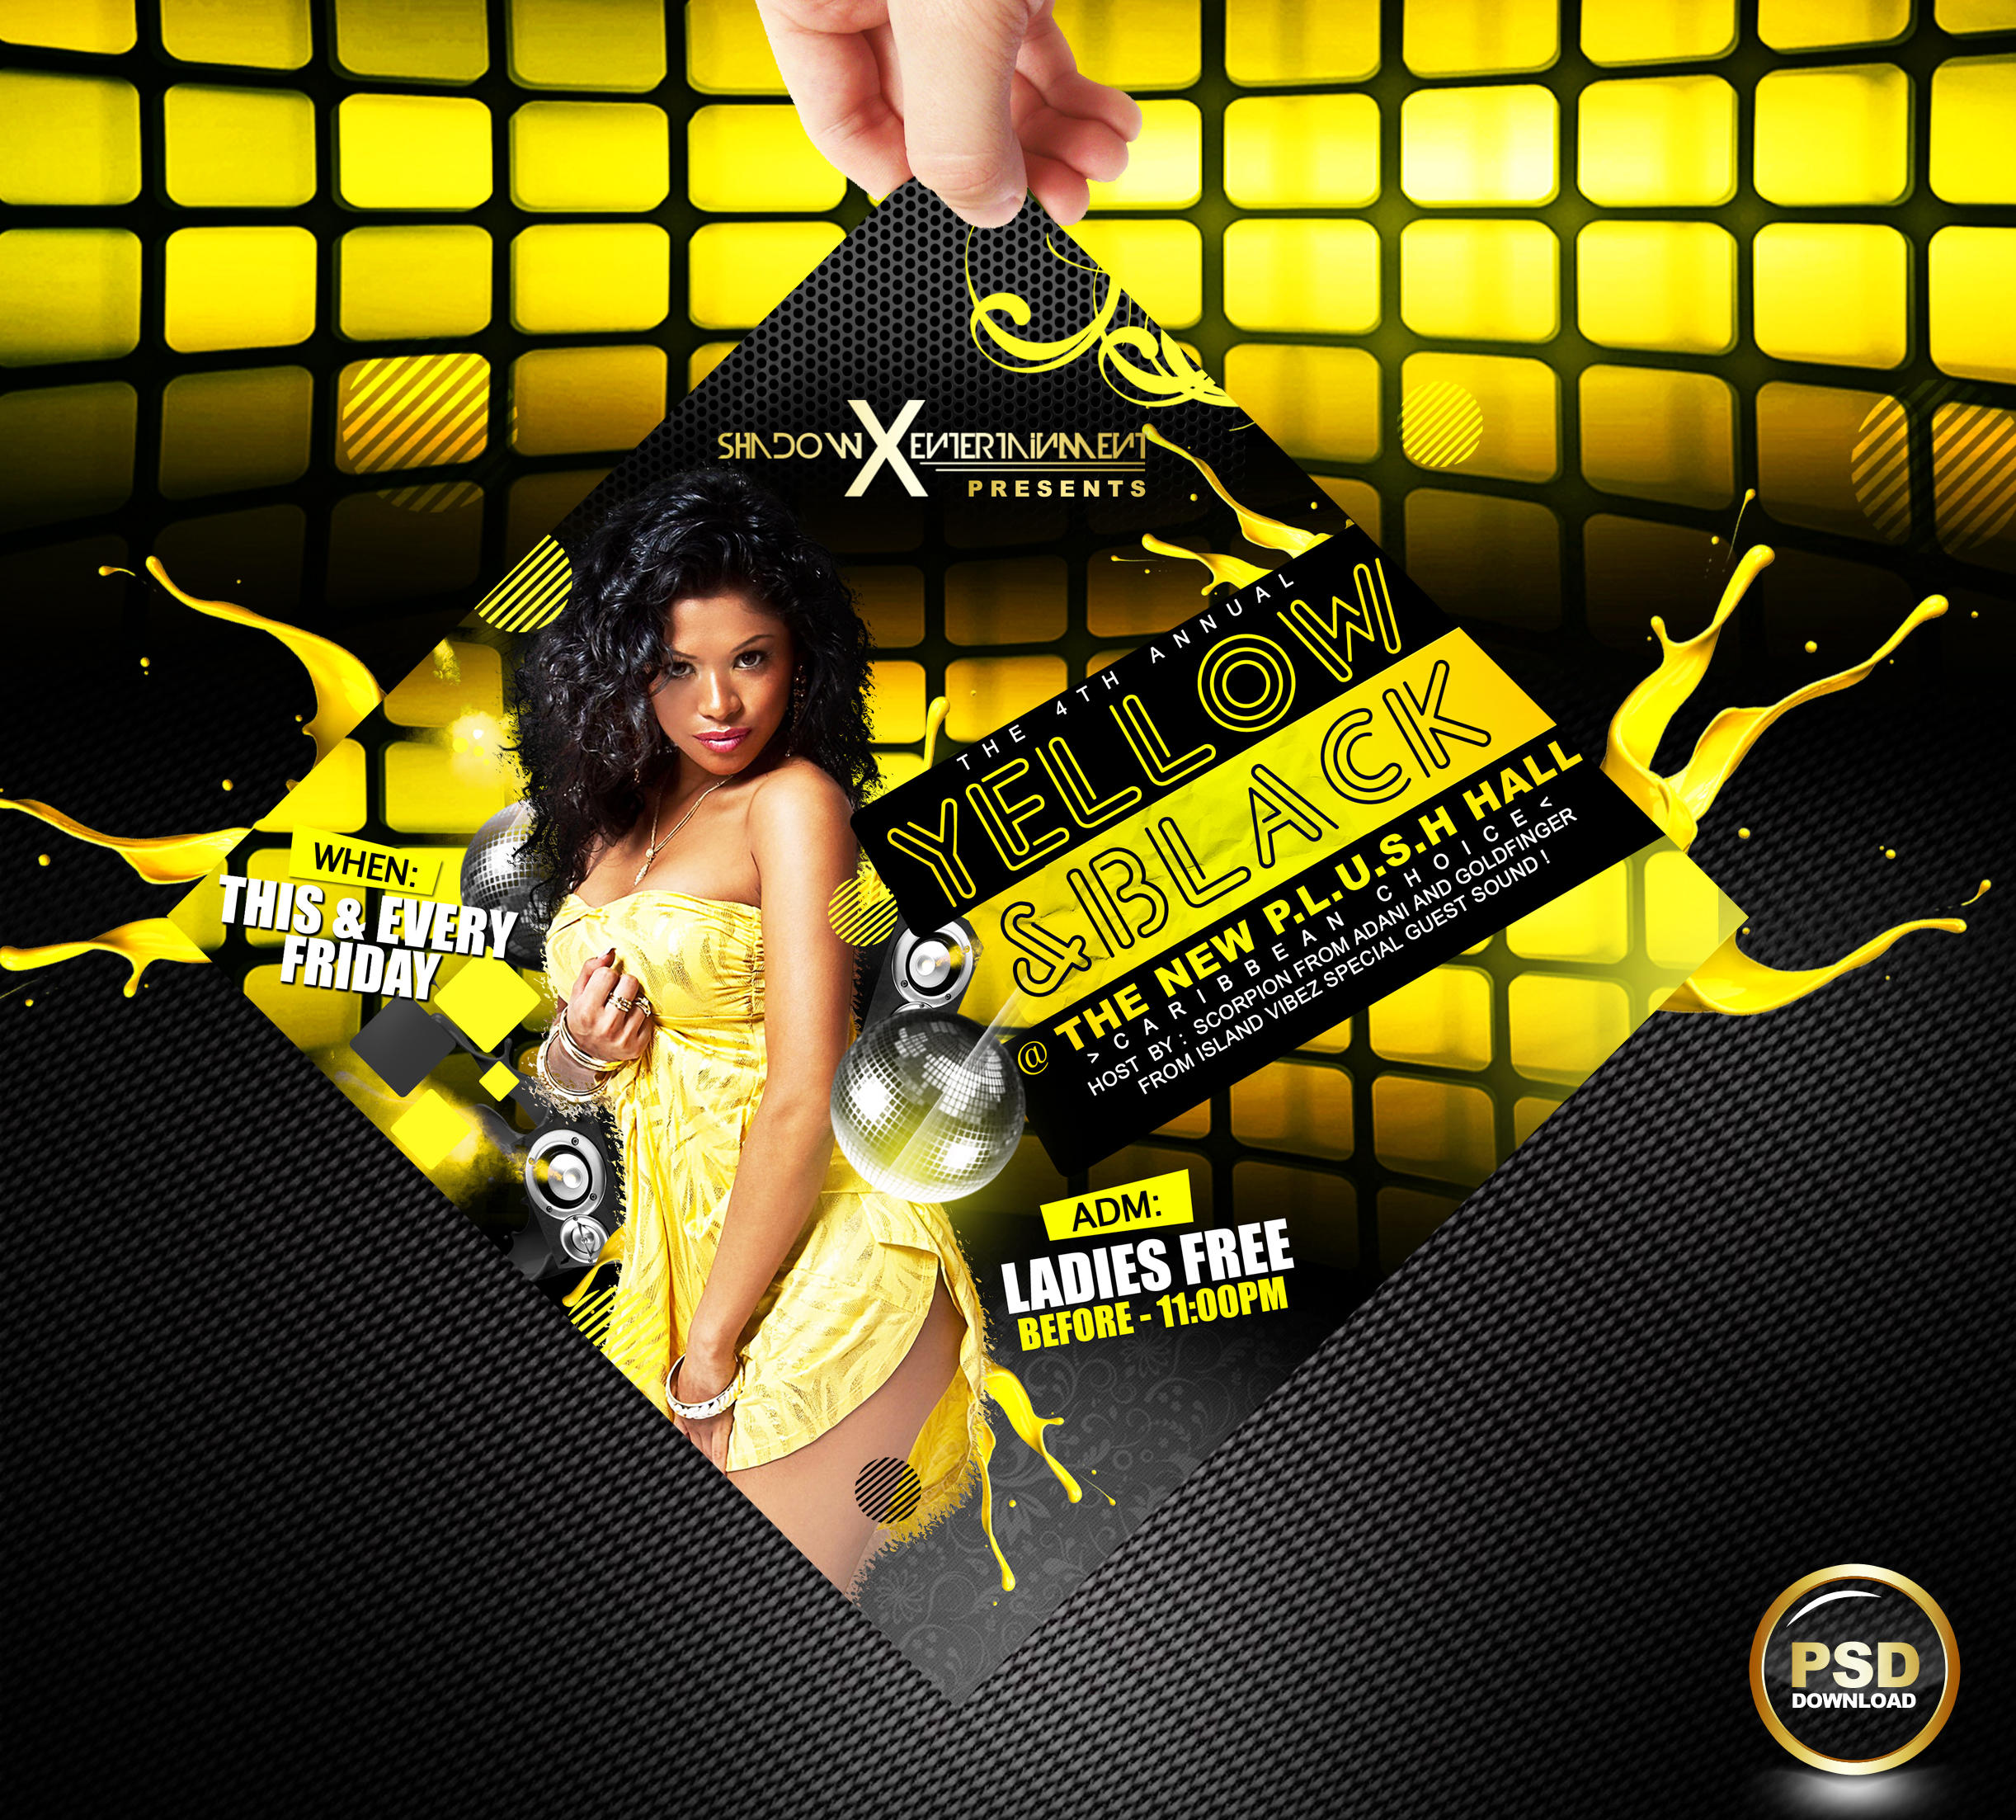 yellow and black party flyer psd by gallistero on yellow and black party flyer psd by gallistero